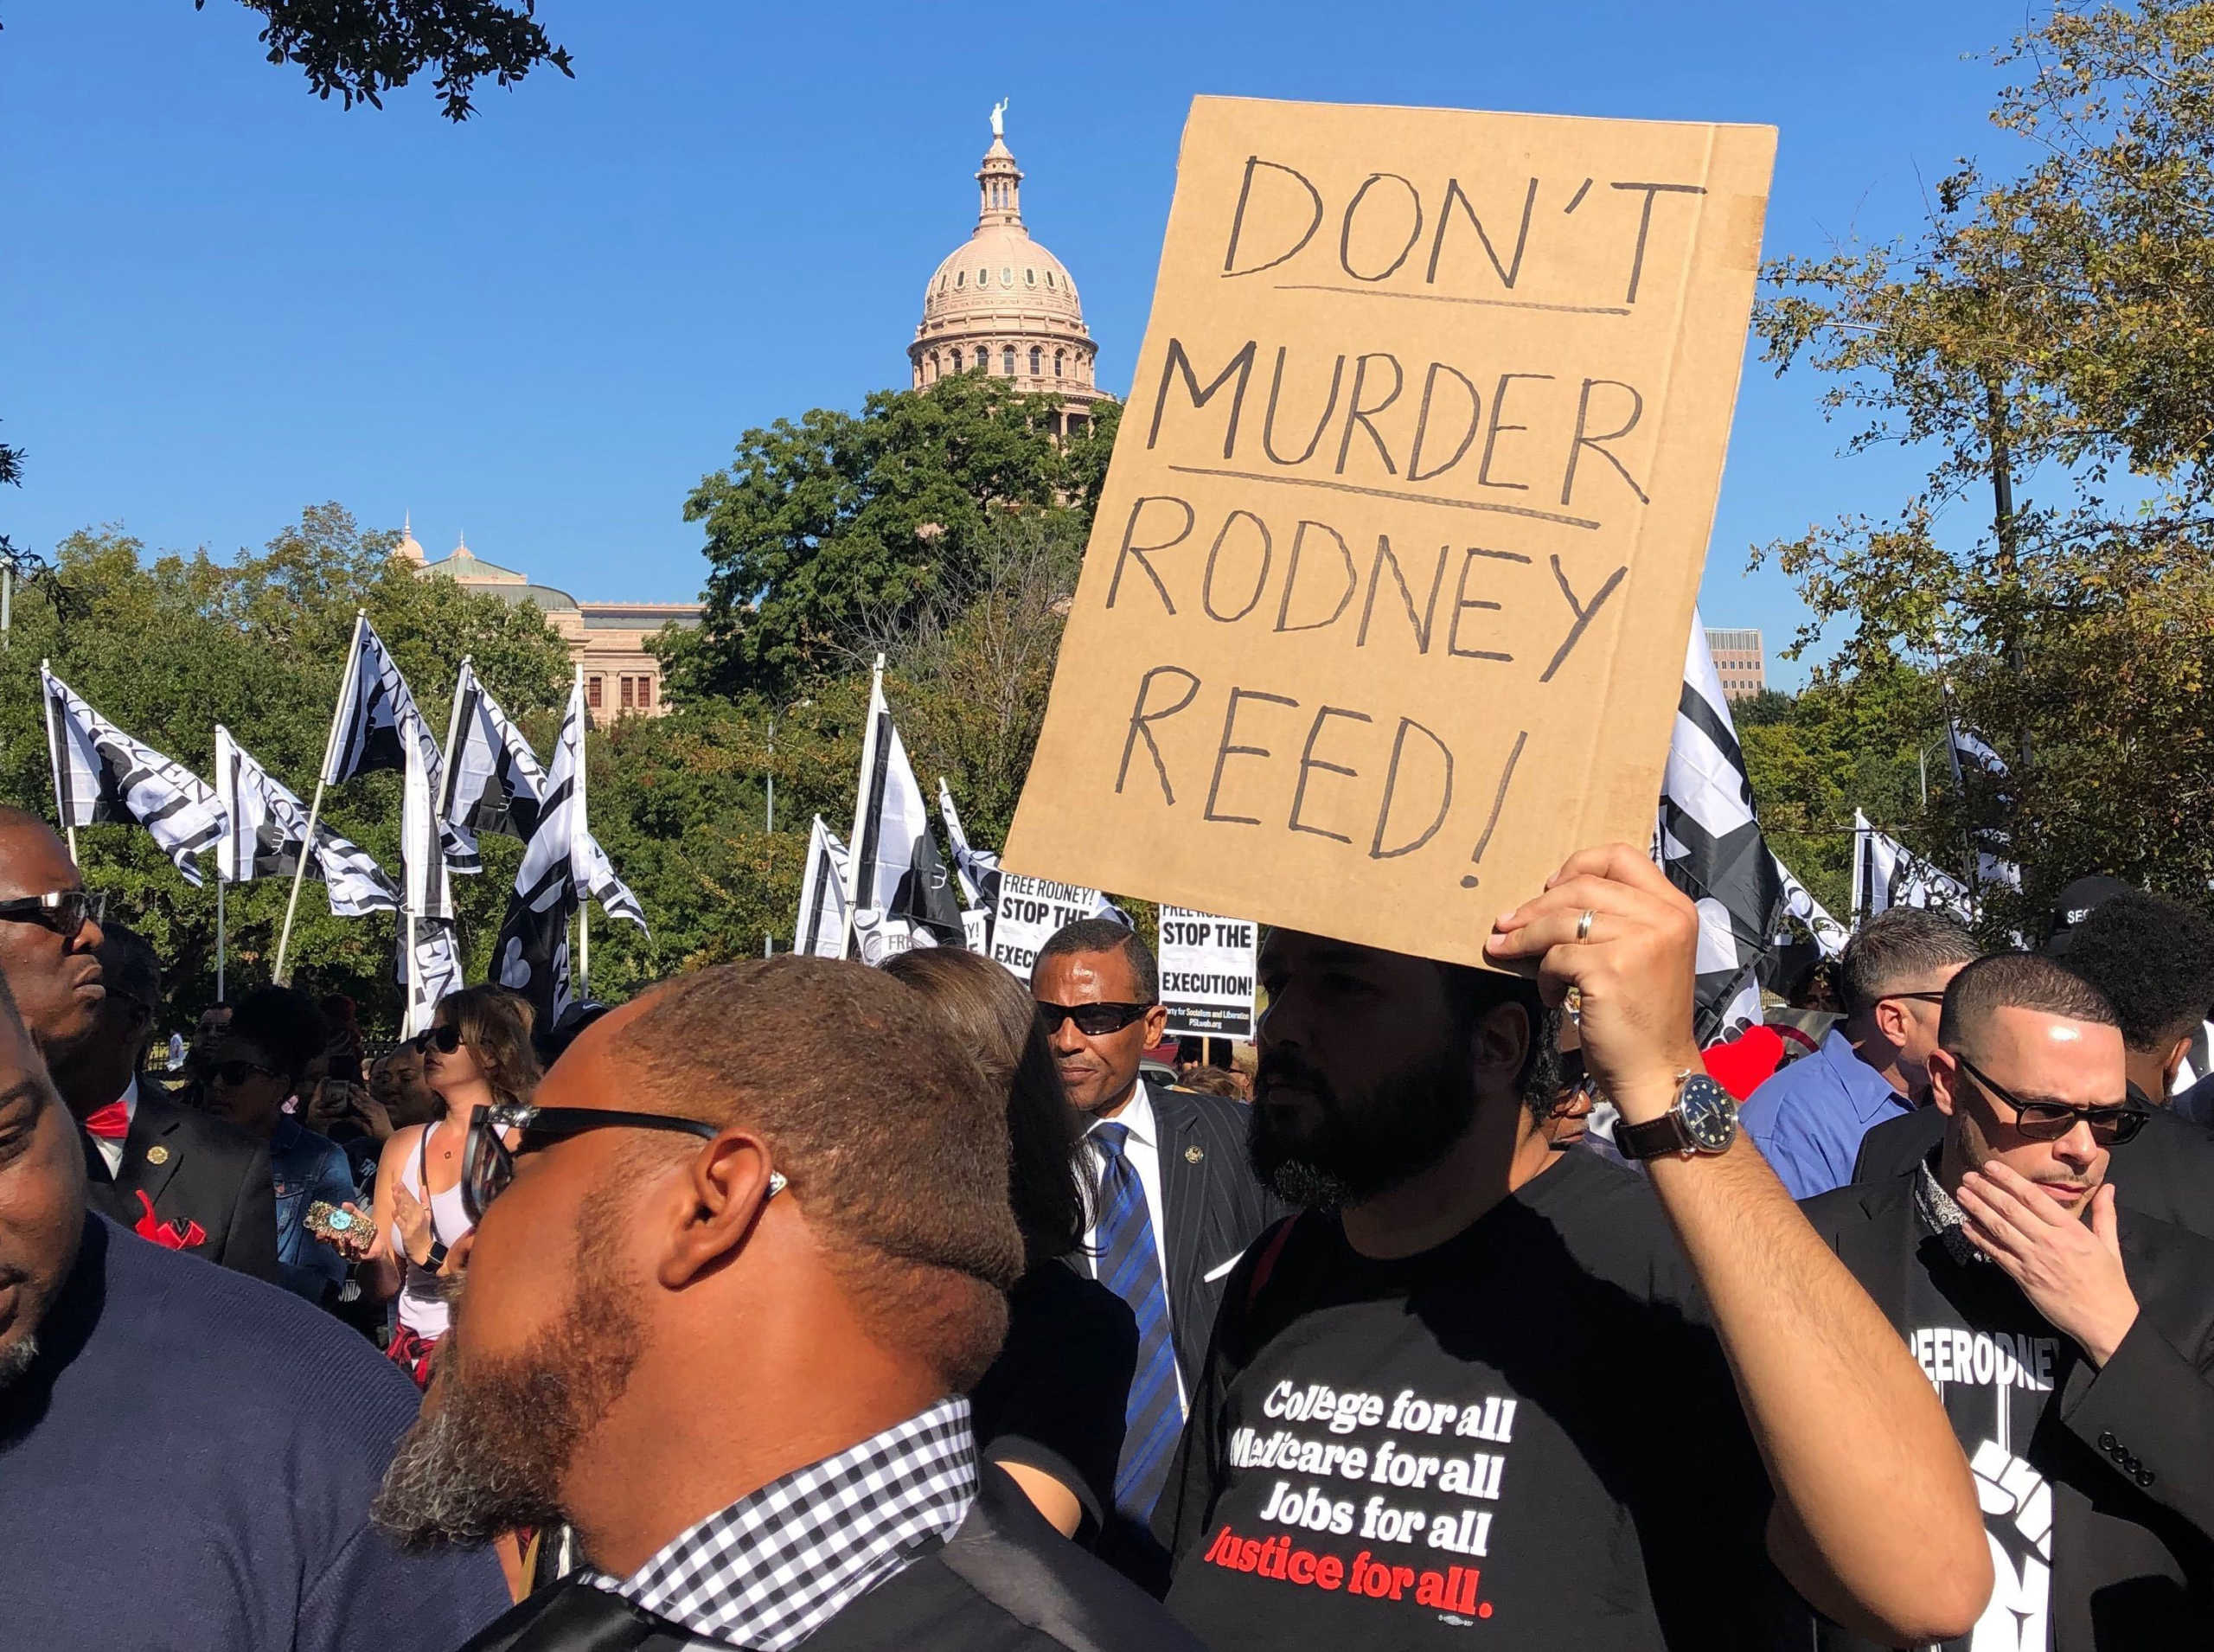 Rodney Reed protestors hold signs